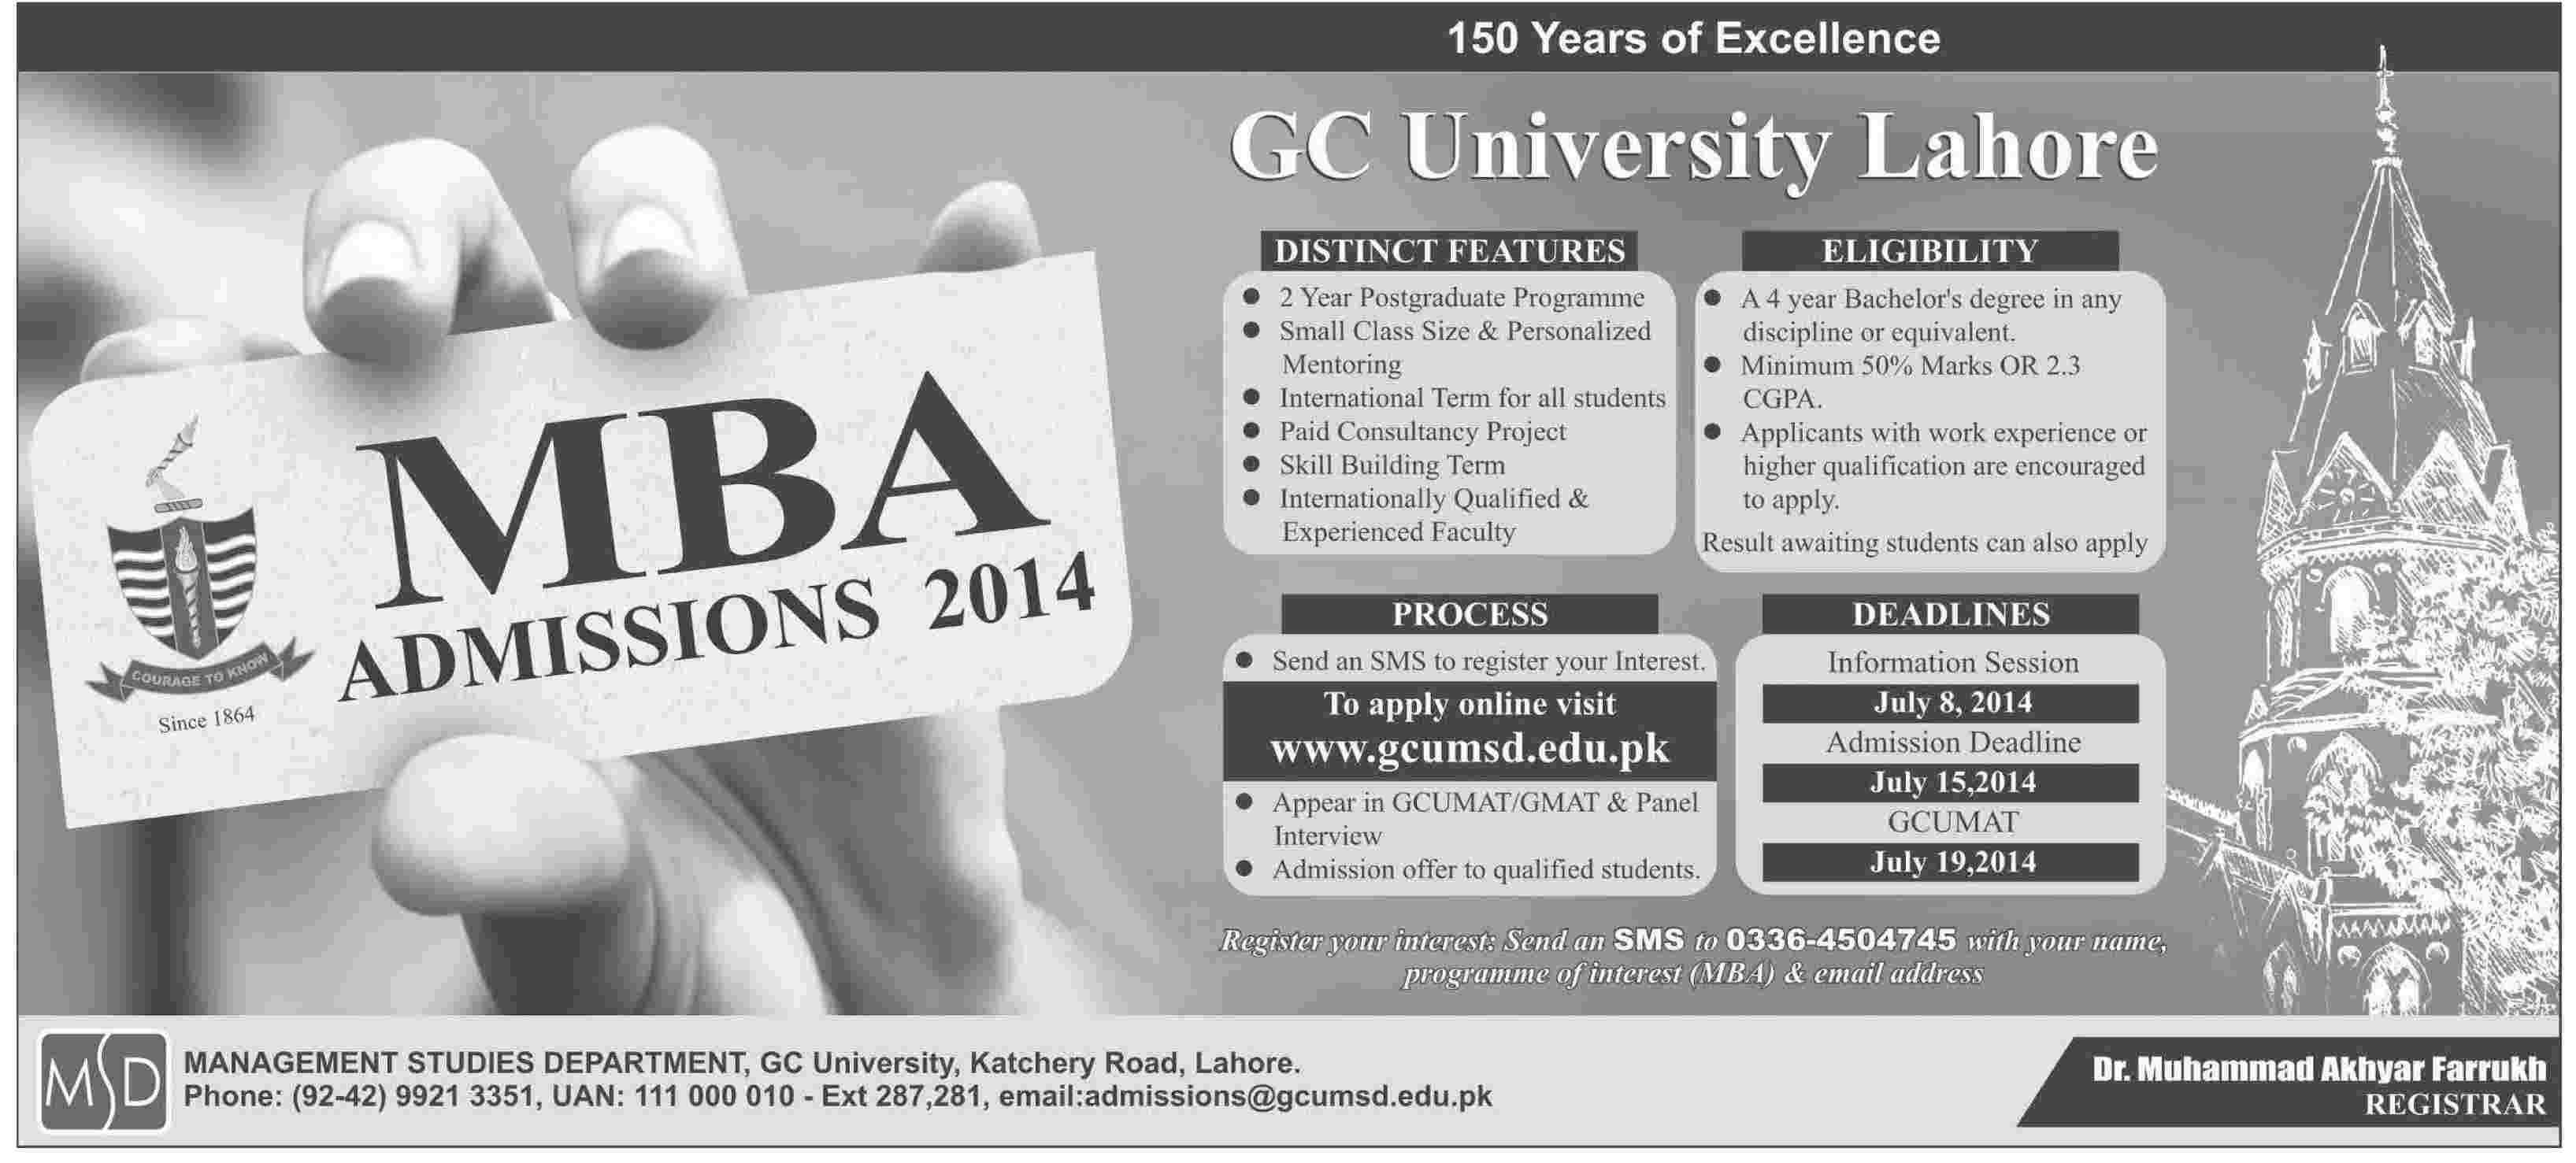 GC University MBA Admission 2014 Eligibility, Requirement, Schedule